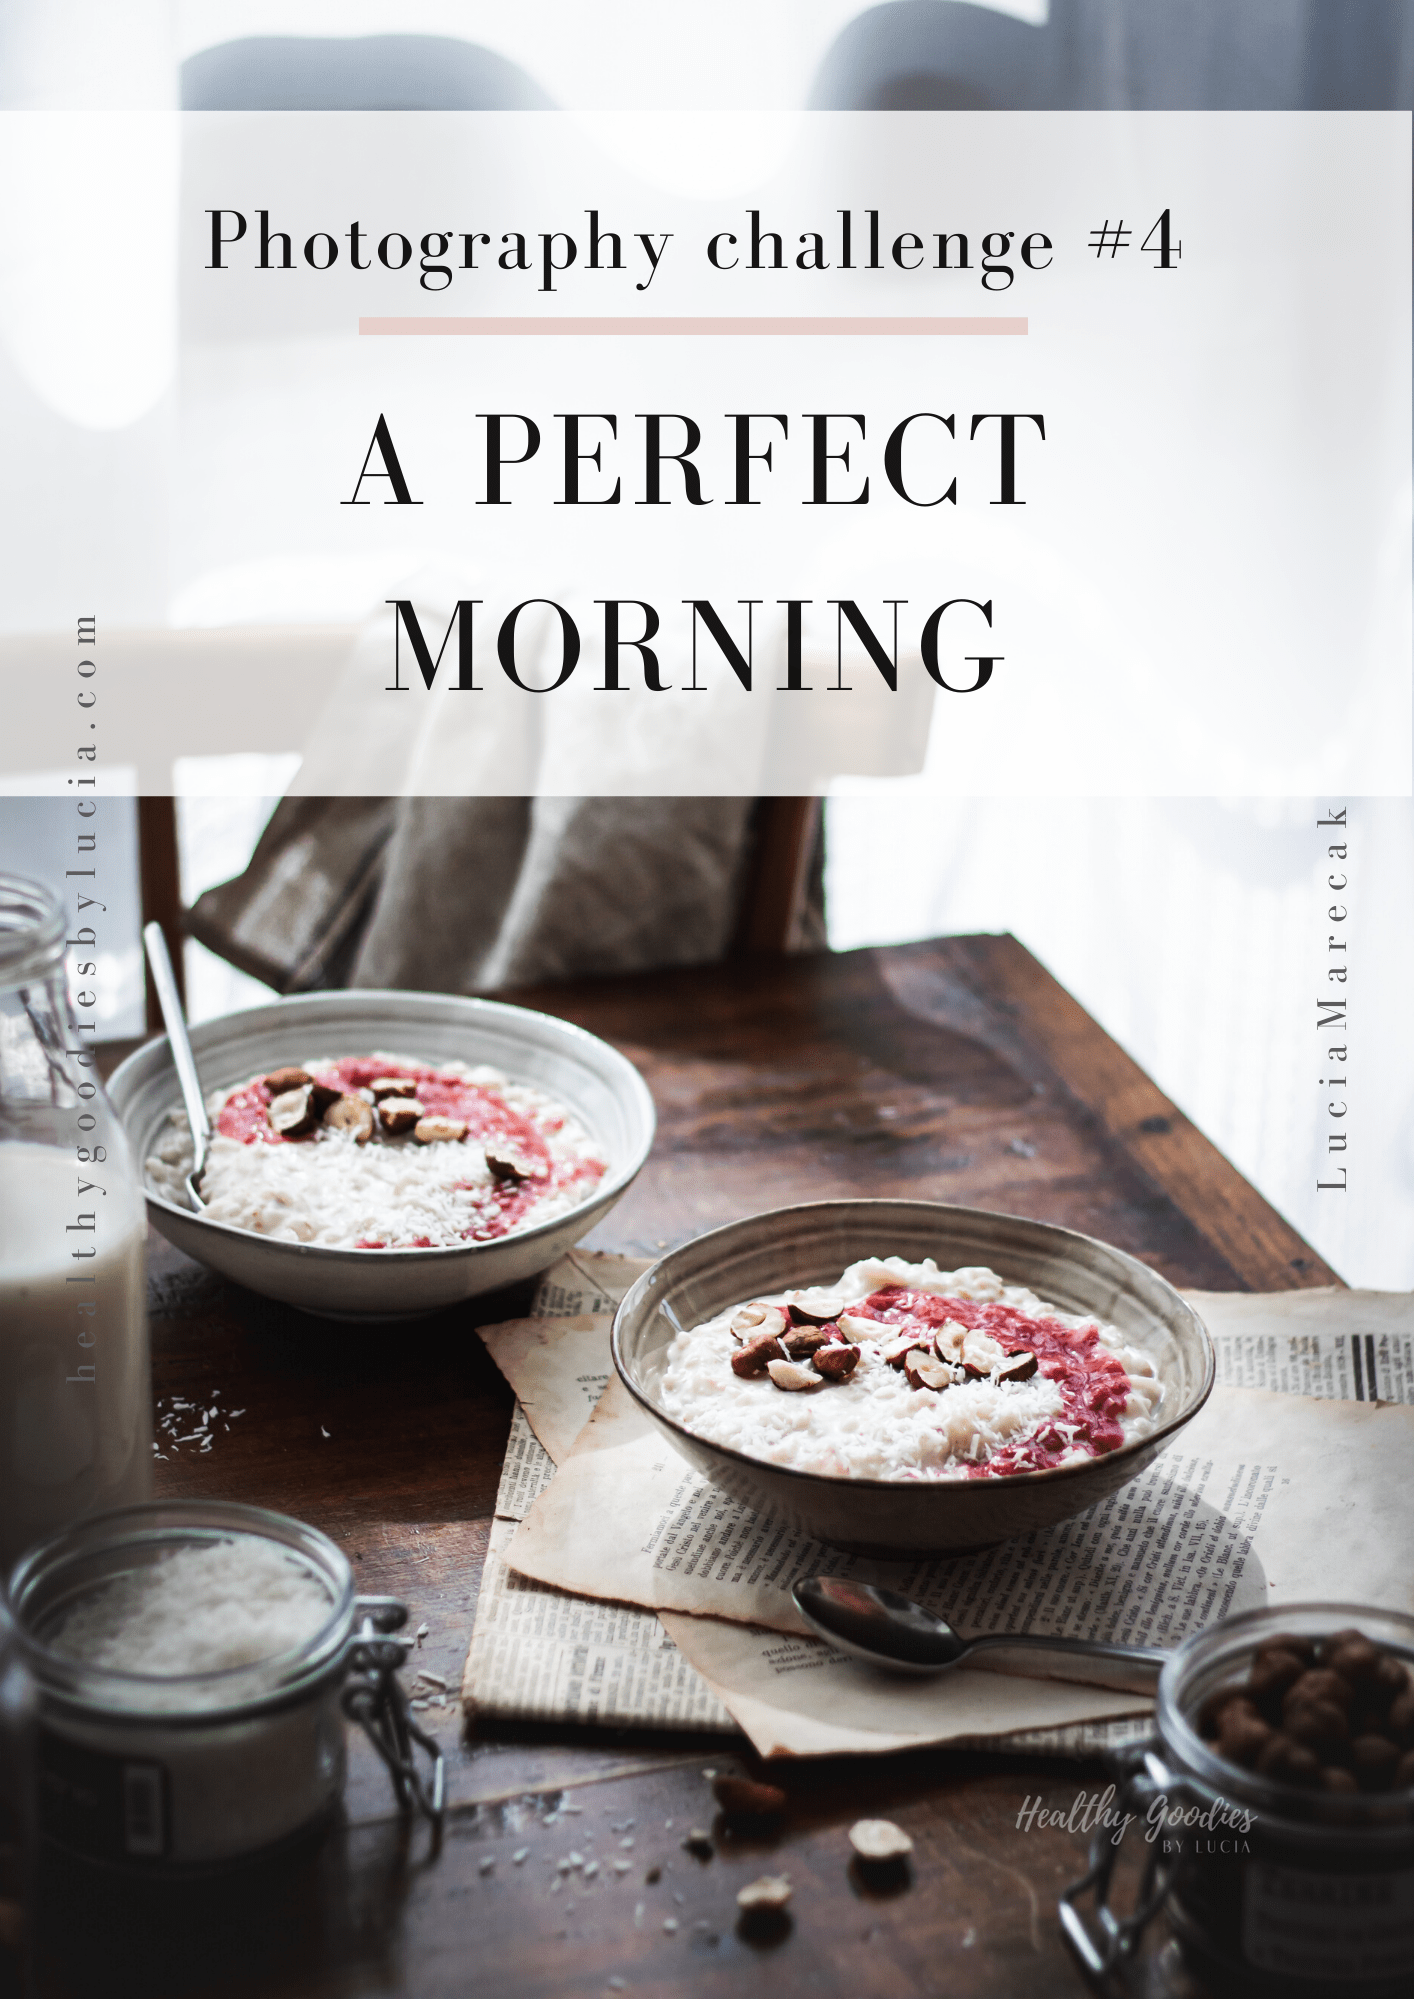 A Perfect Morning - New photography Challenge week #4